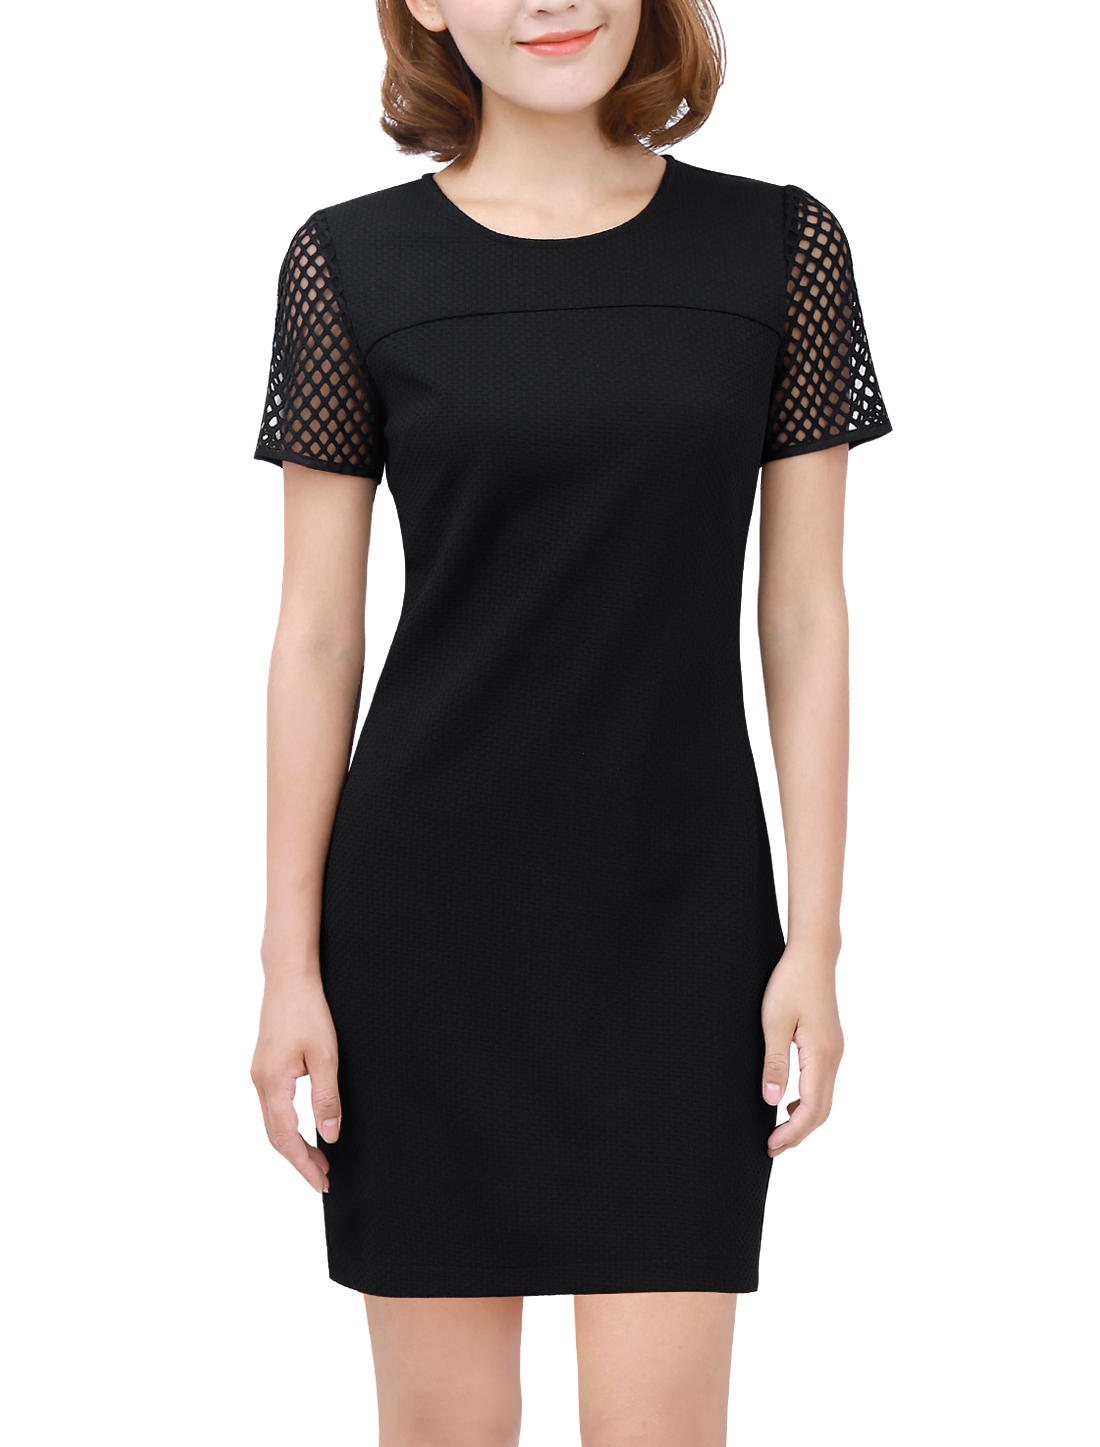 Woman Short Sleeve Panel Textured Casual Dress Black M